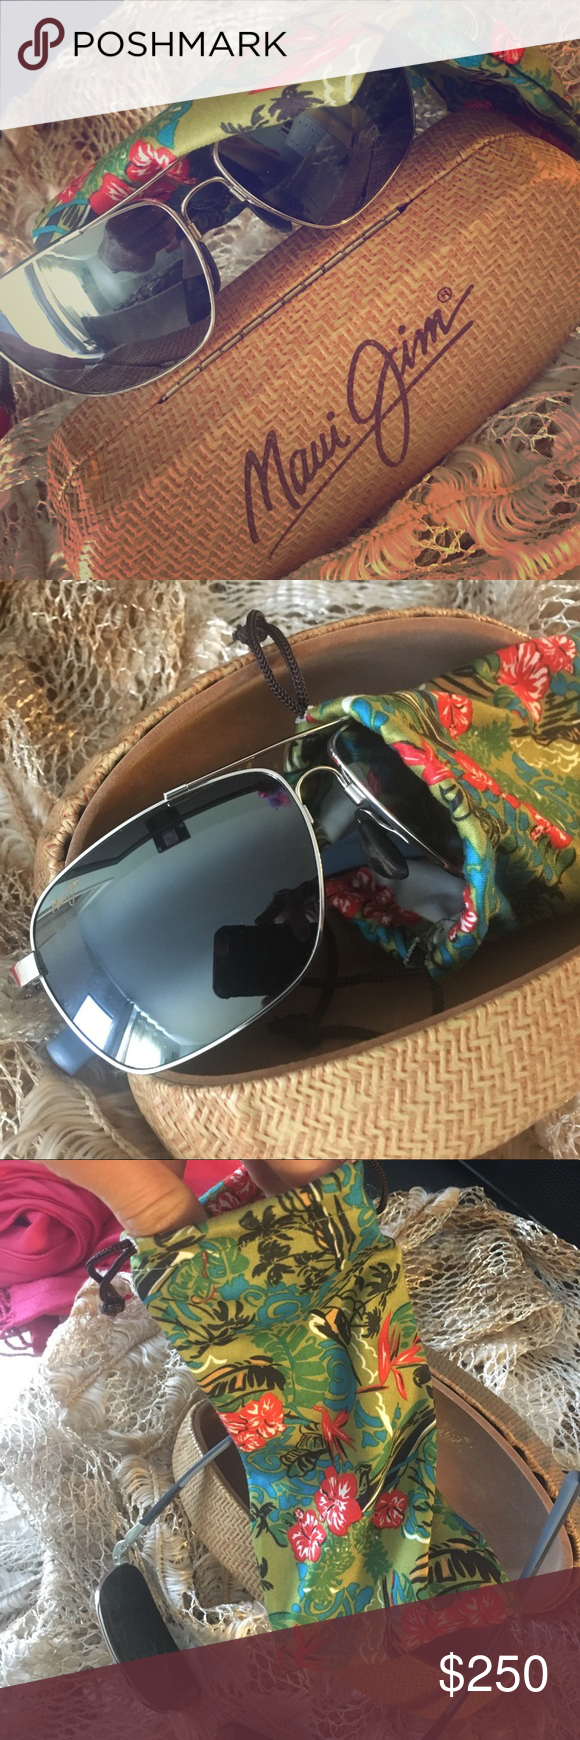 2cb15d6f672 Selling this Men s Sunglasses on Poshmark! My username is  kaliland.   shopmycloset